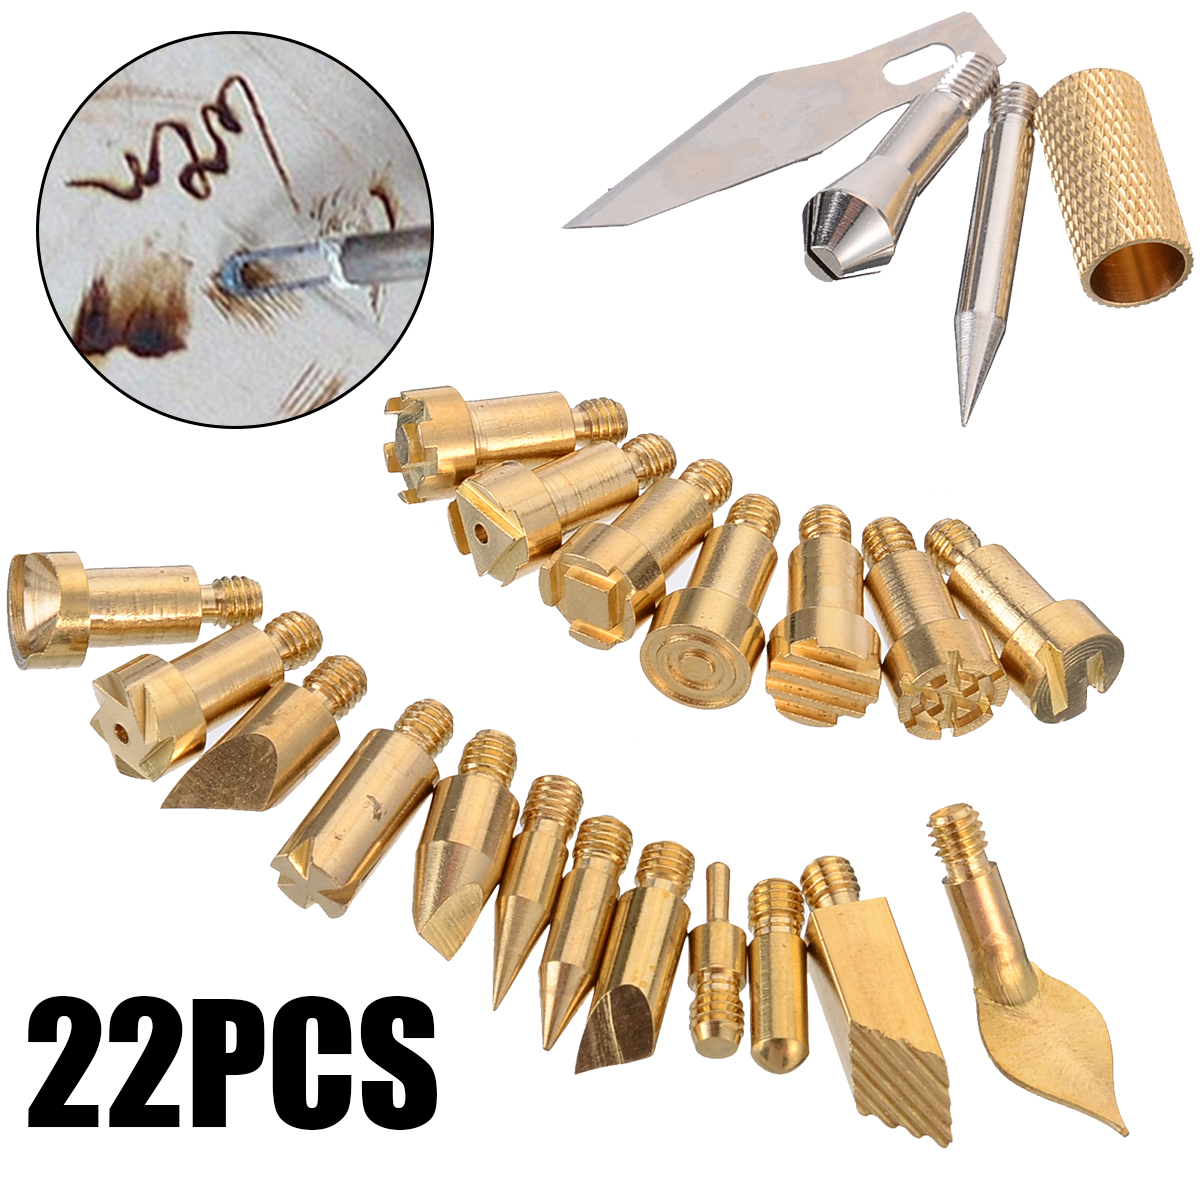 22Pcs Wood Burning Pen Tip Craft Set Iron Carving Pyrography Tool Art Soldering Pen Brass Welding Tips For Wood Embossing